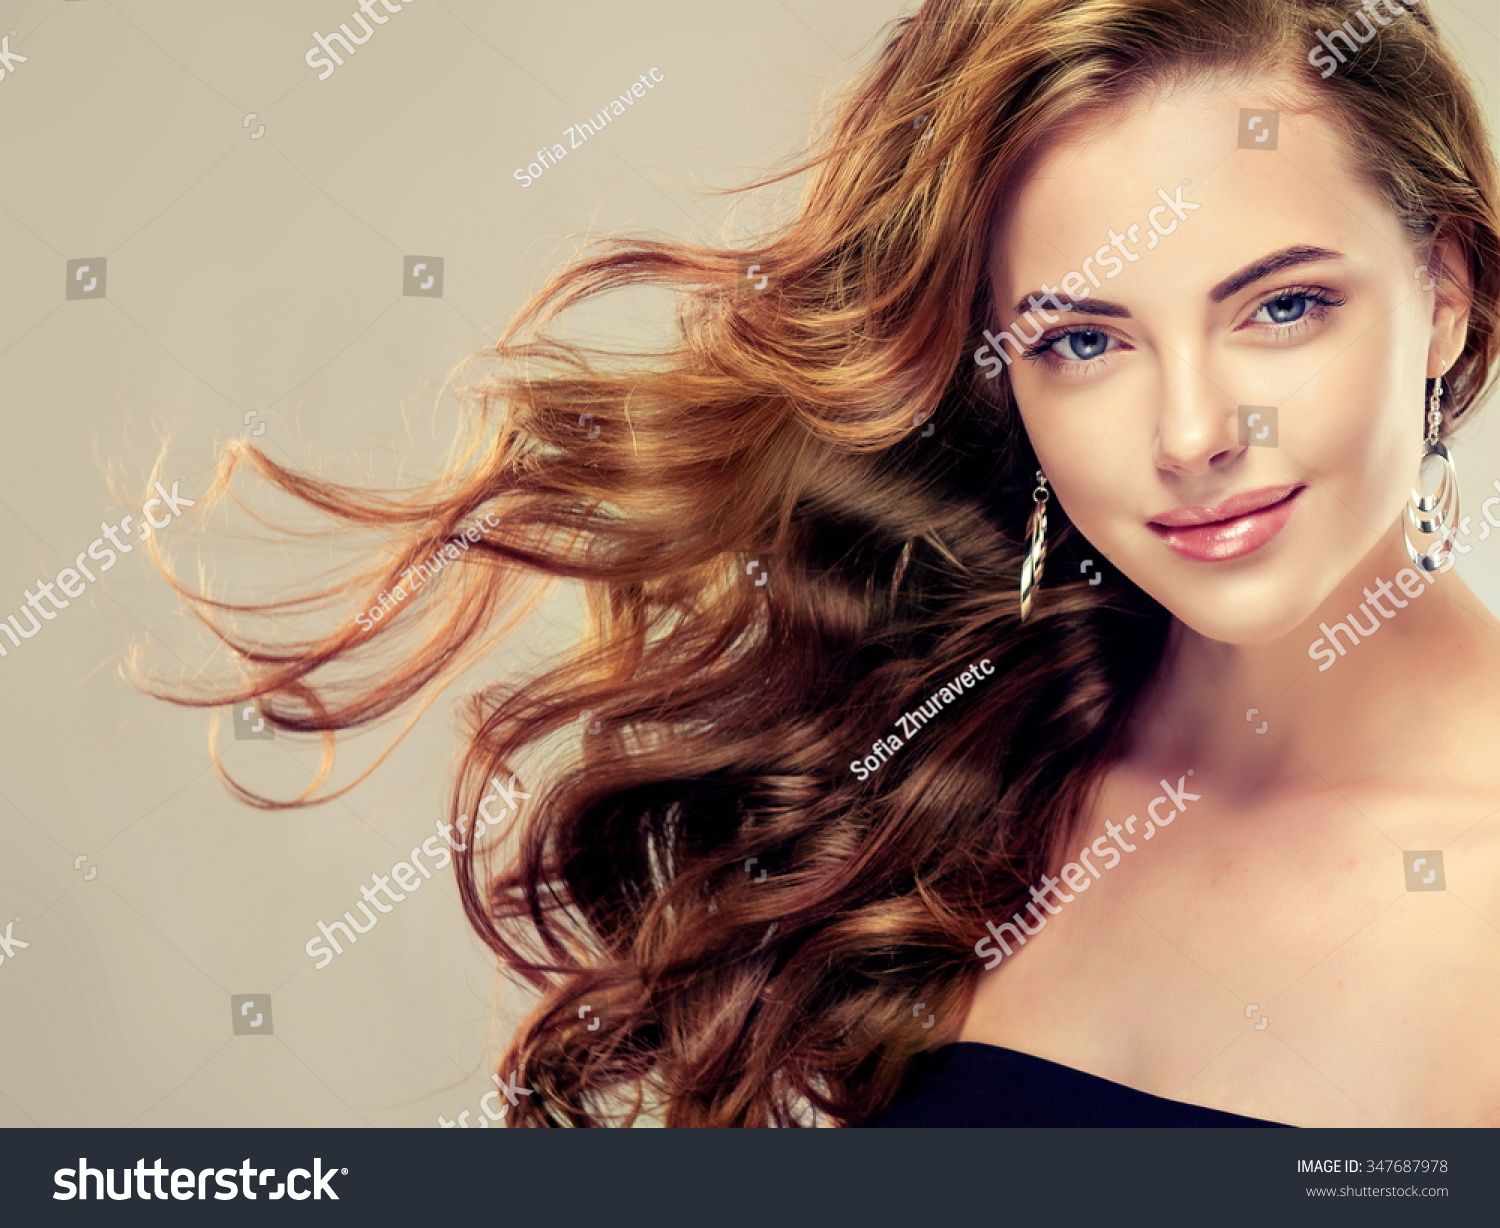 Beautiful Girl With Long Wavy Hair Brunette With Curly